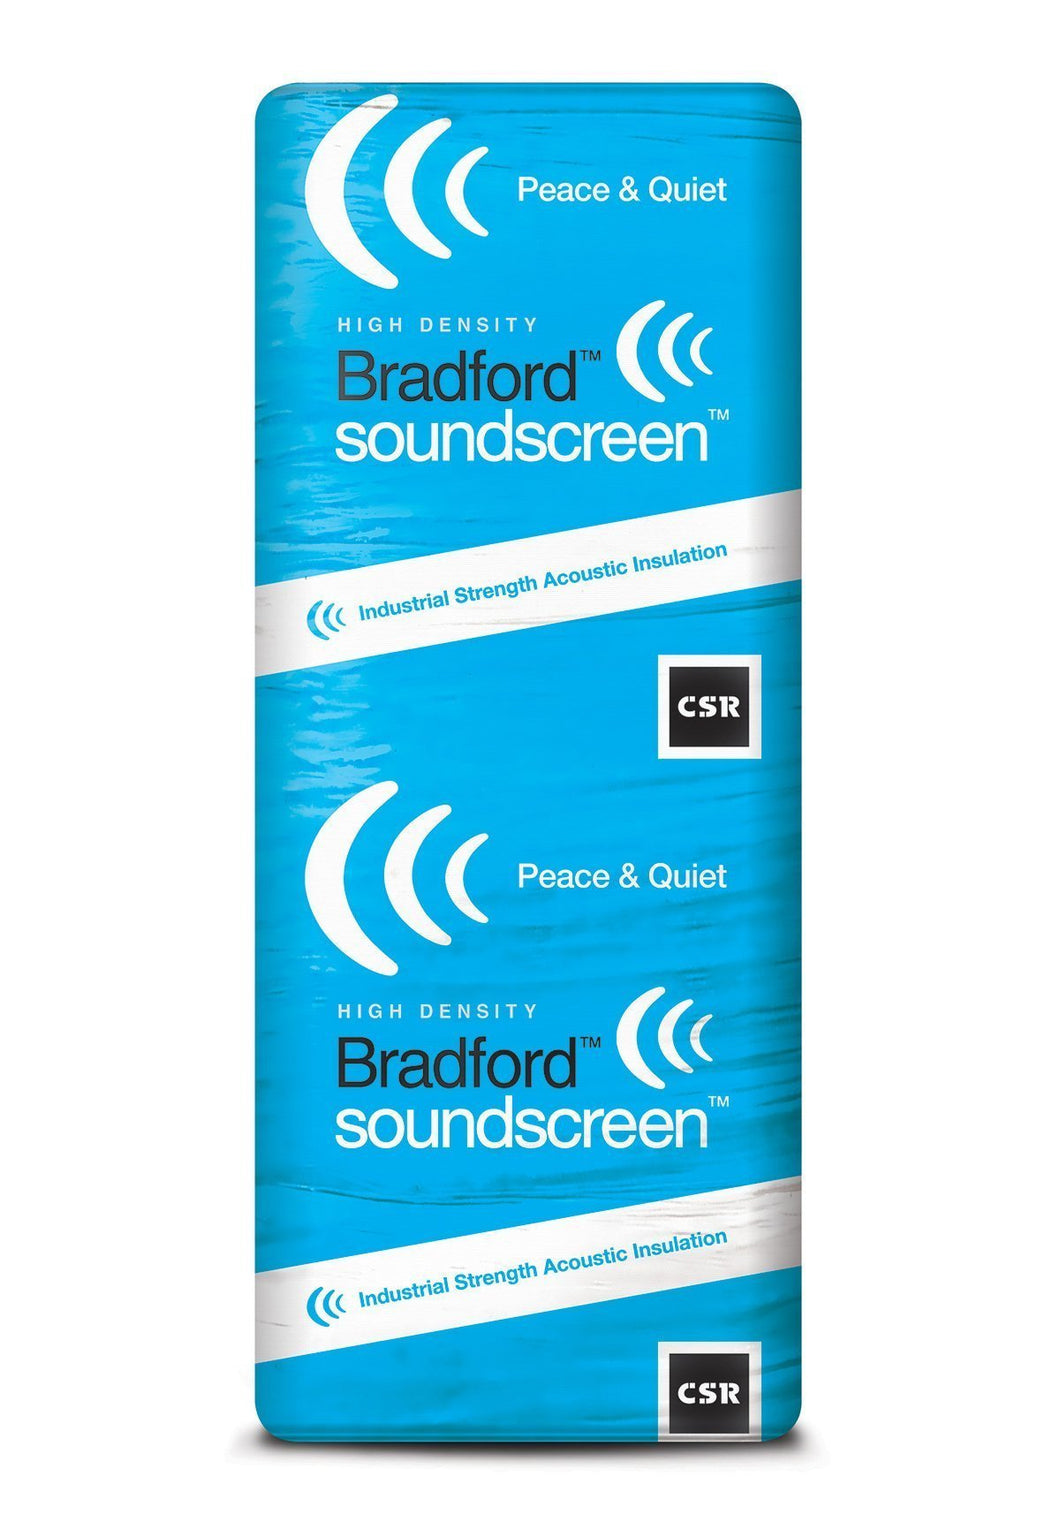 Bradford SoundScreen Acoustic Wall Insulation Batts - R1.7 - 1160 x 580mm - 7.4m²/pack - Patnicar Insulation